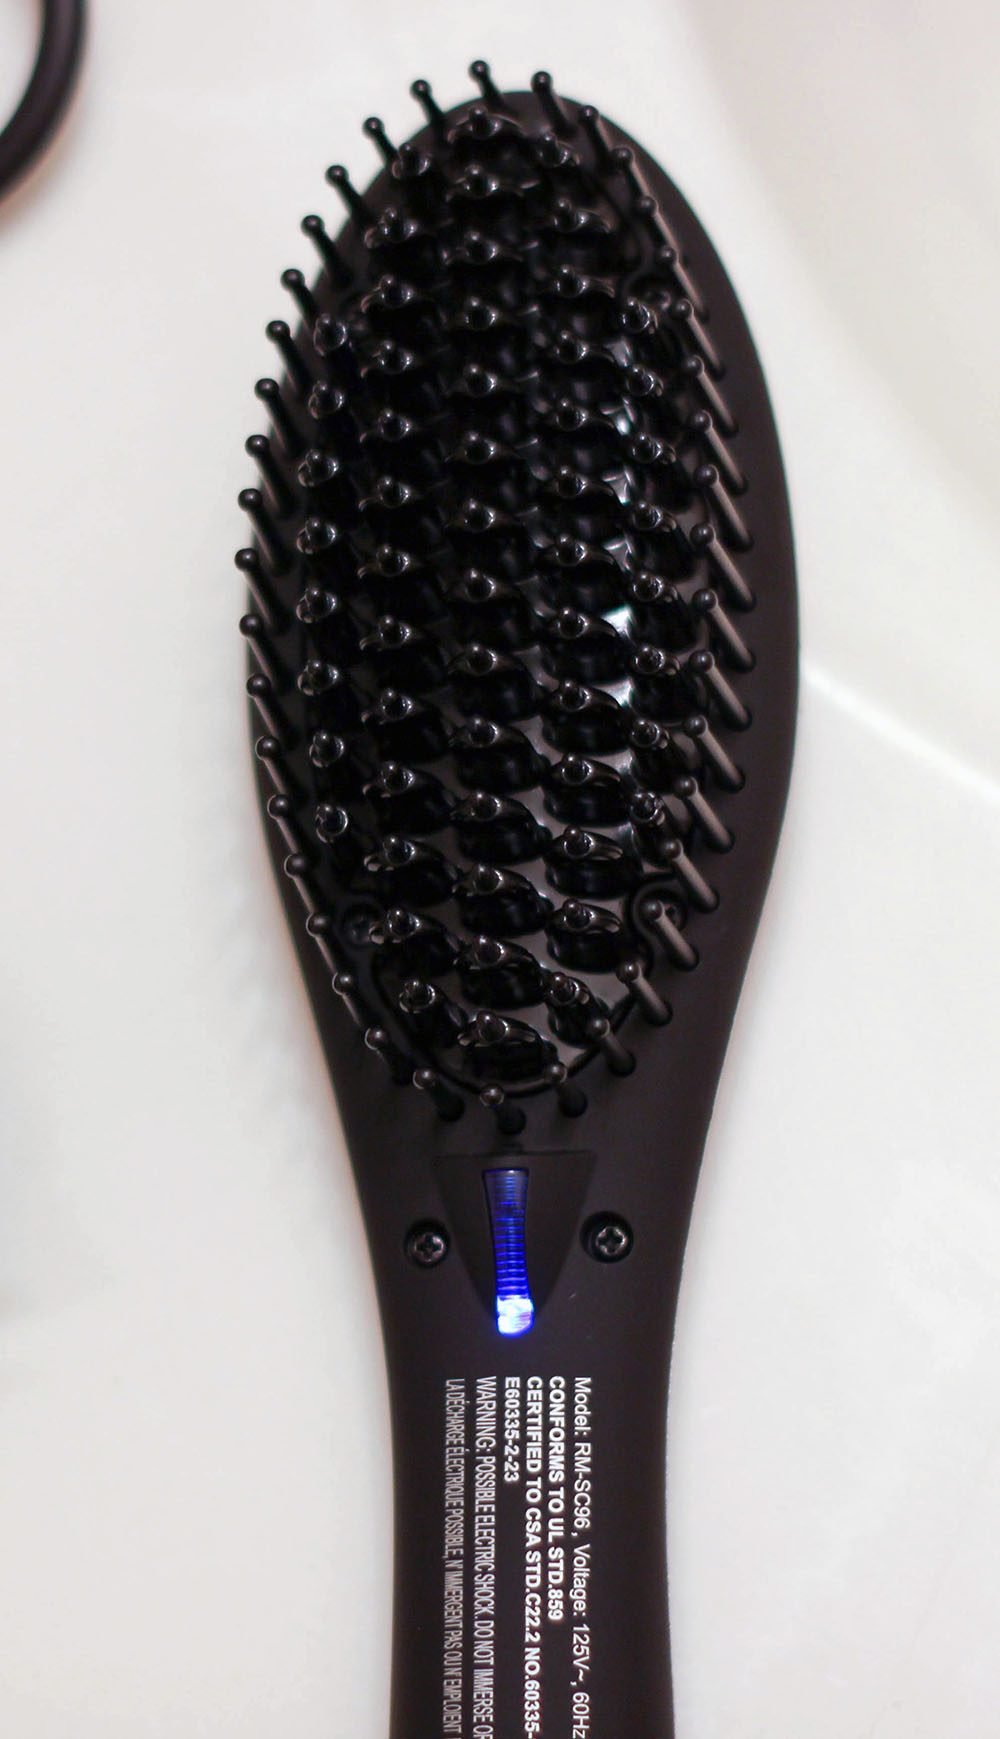 Heated hair brush for straightening and smoothing hair